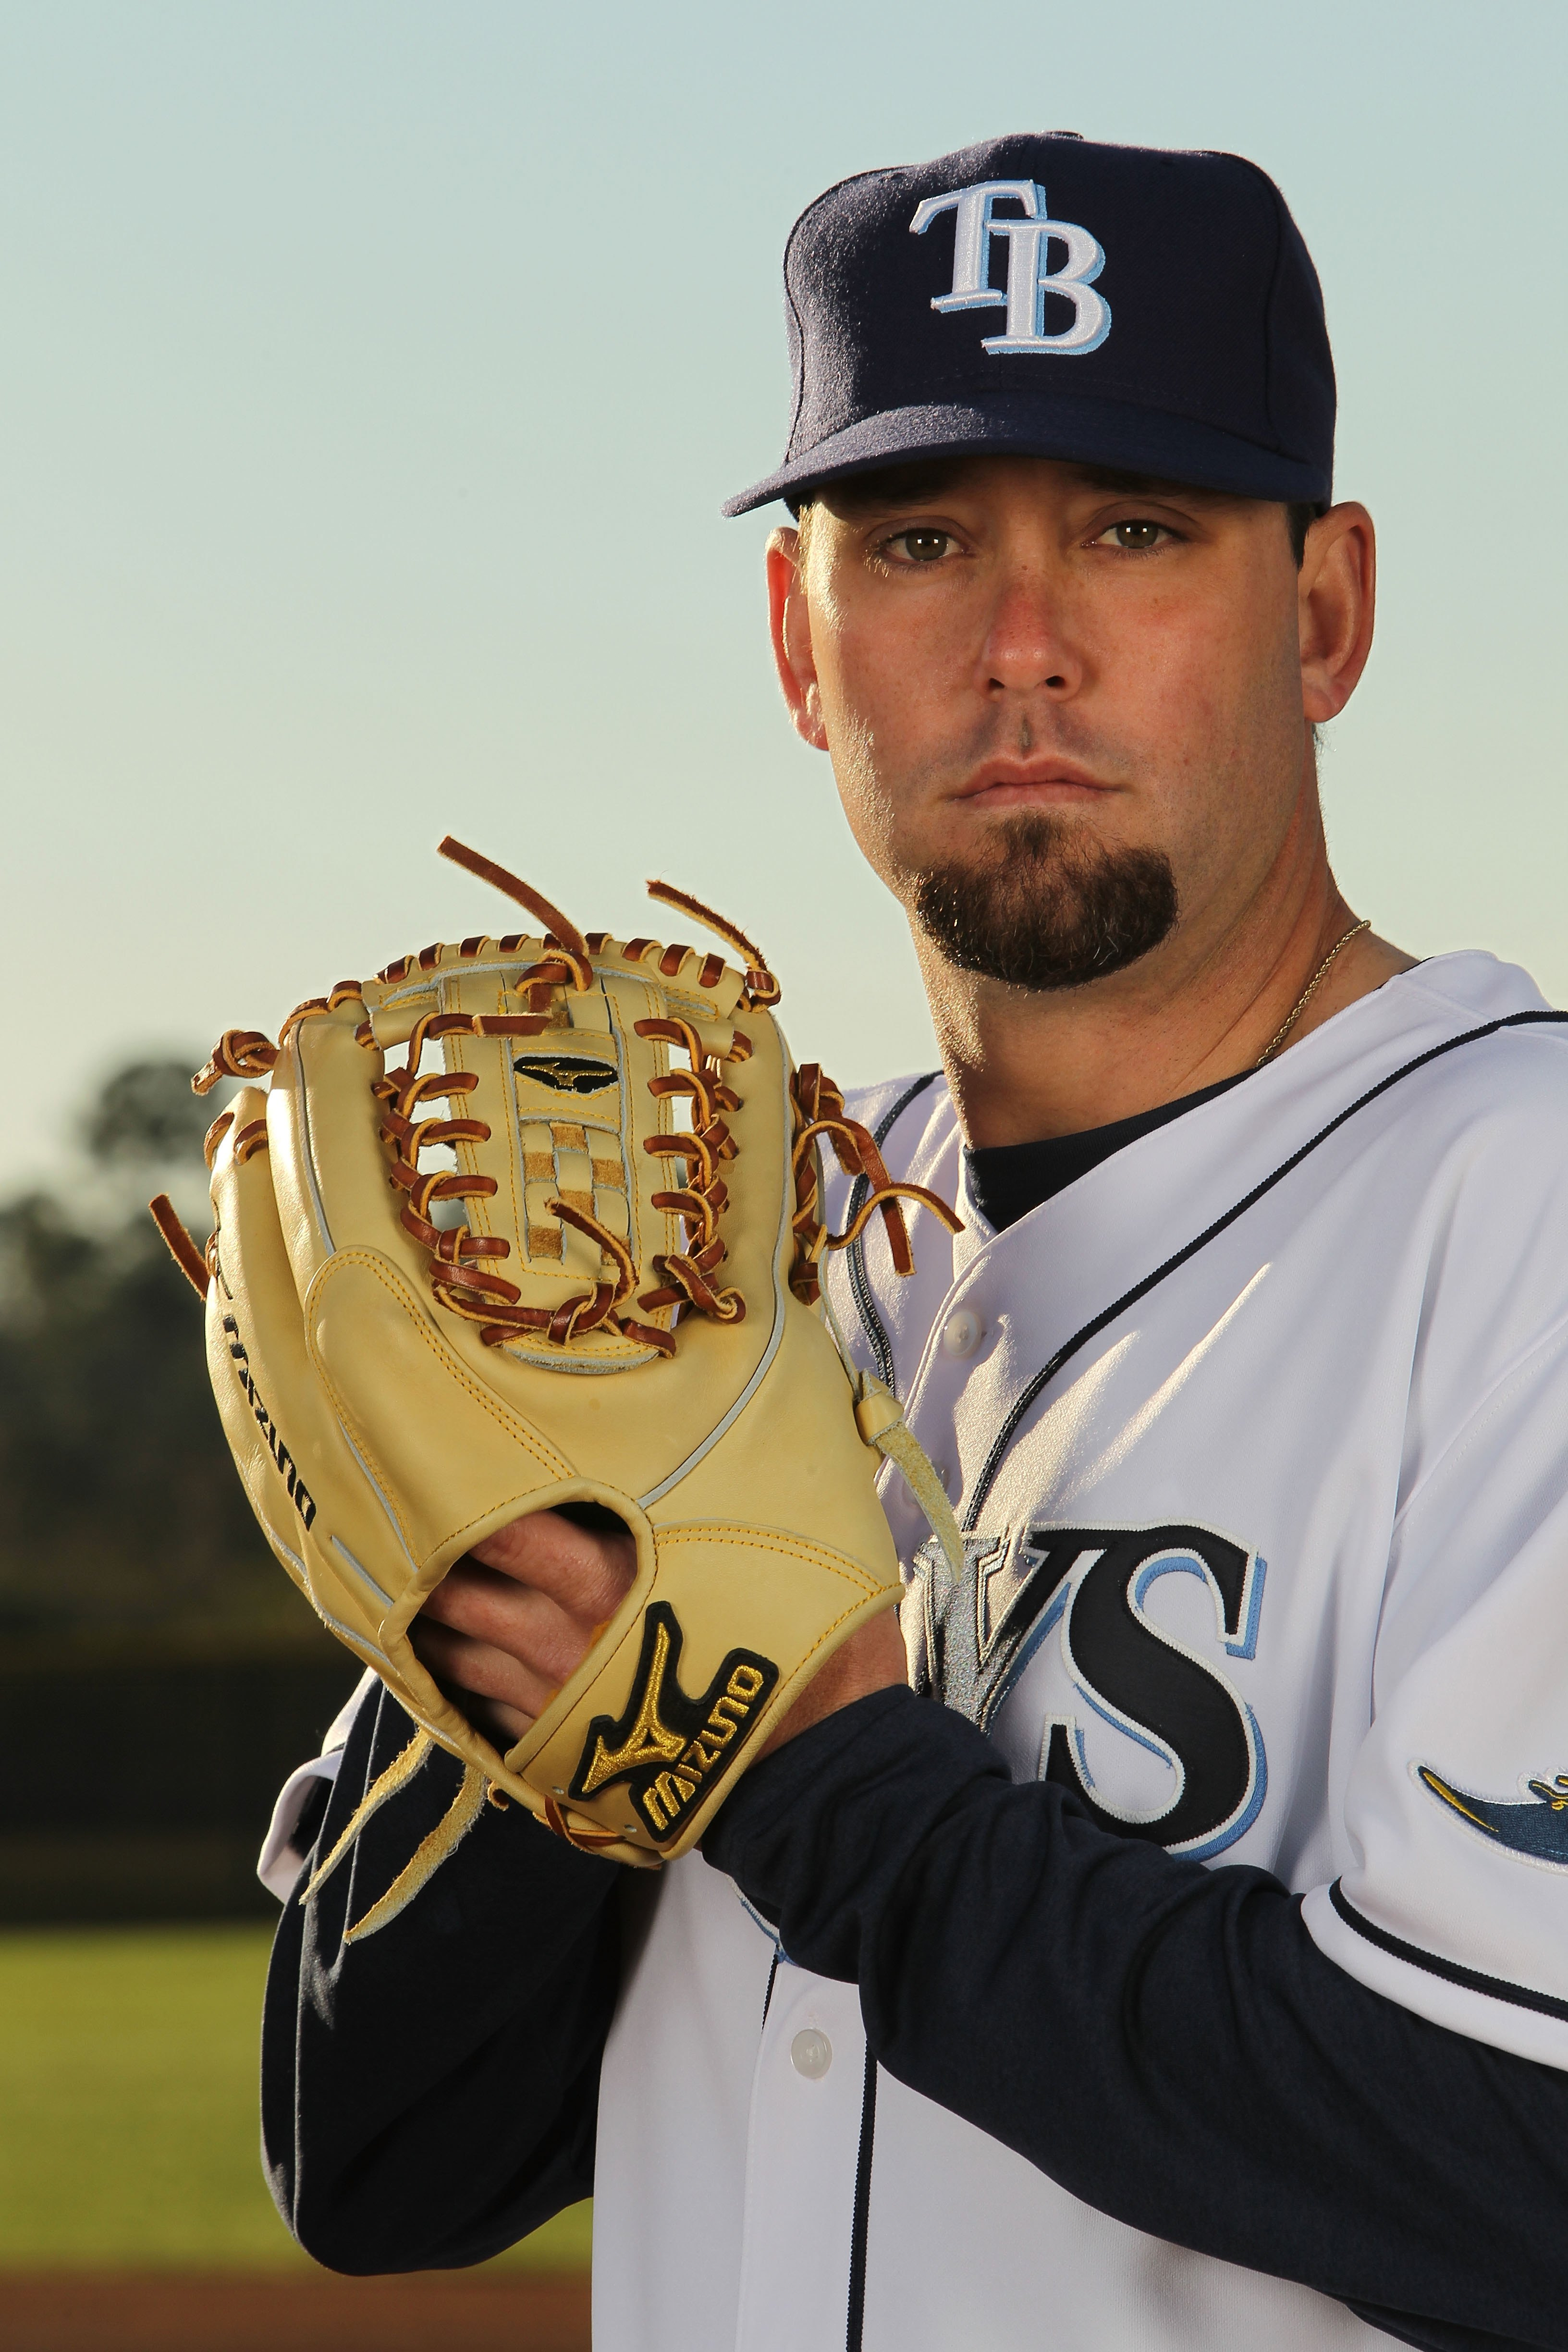 PORT CHARLOTTE, FL - FEBRUARY 26:  Dan Wheeler #35 of the Tampa Bay Rays poses for a photo during Spring Training Media Photo Day at Charlotte County Sports Park on February 26, 2010 in Port Charlotte, Florida.  (Photo by Nick Laham/Getty Images)